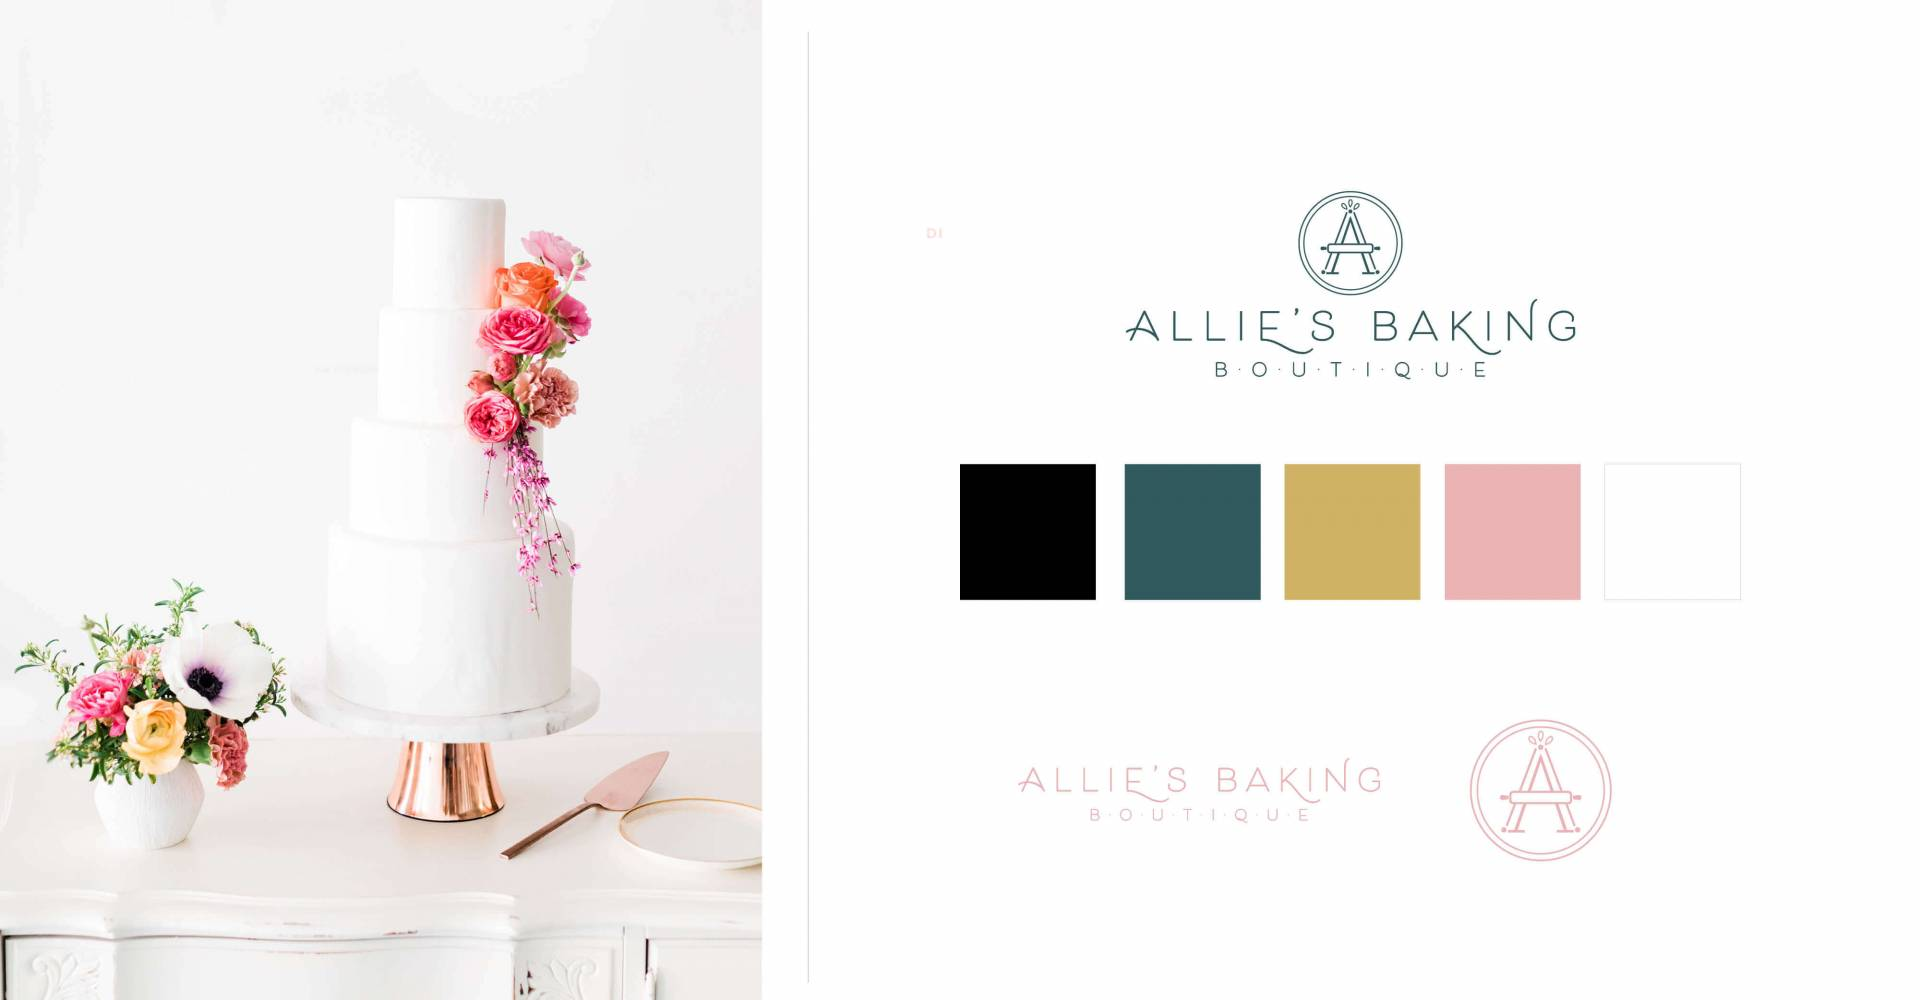 Portfolio_BrandlinkMedia_Allies Baking Boutique_02